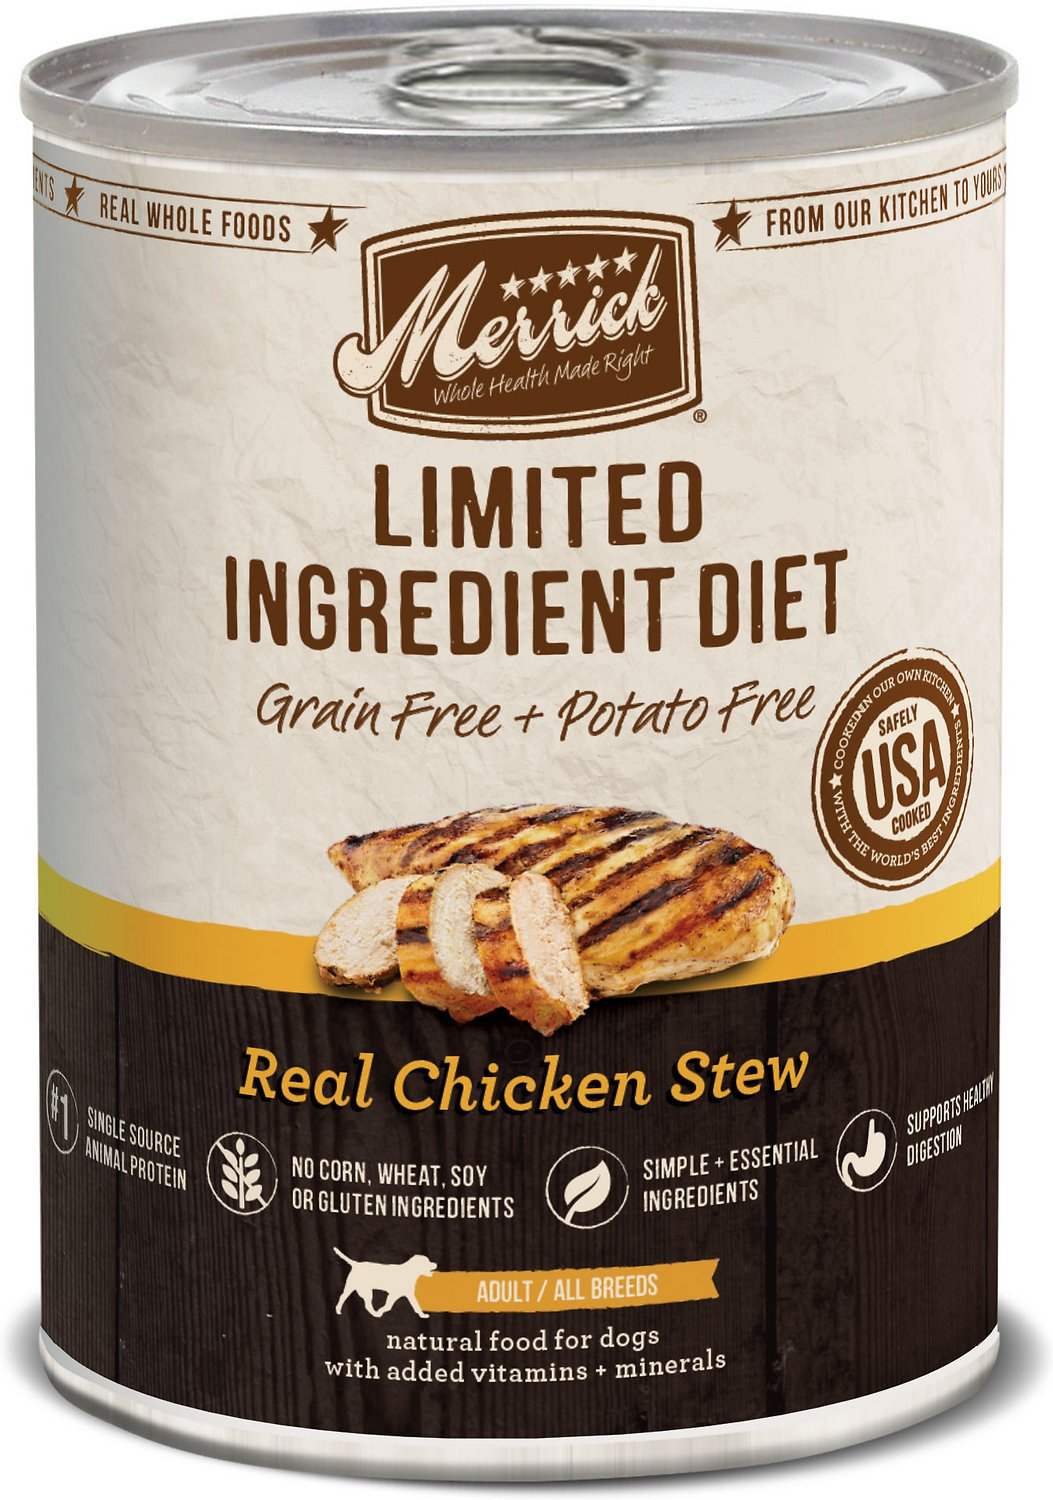 Merrick Limited Ingredient Diet Grain-Free Real Chicken Stew Canned Dog Food, 12.7-oz